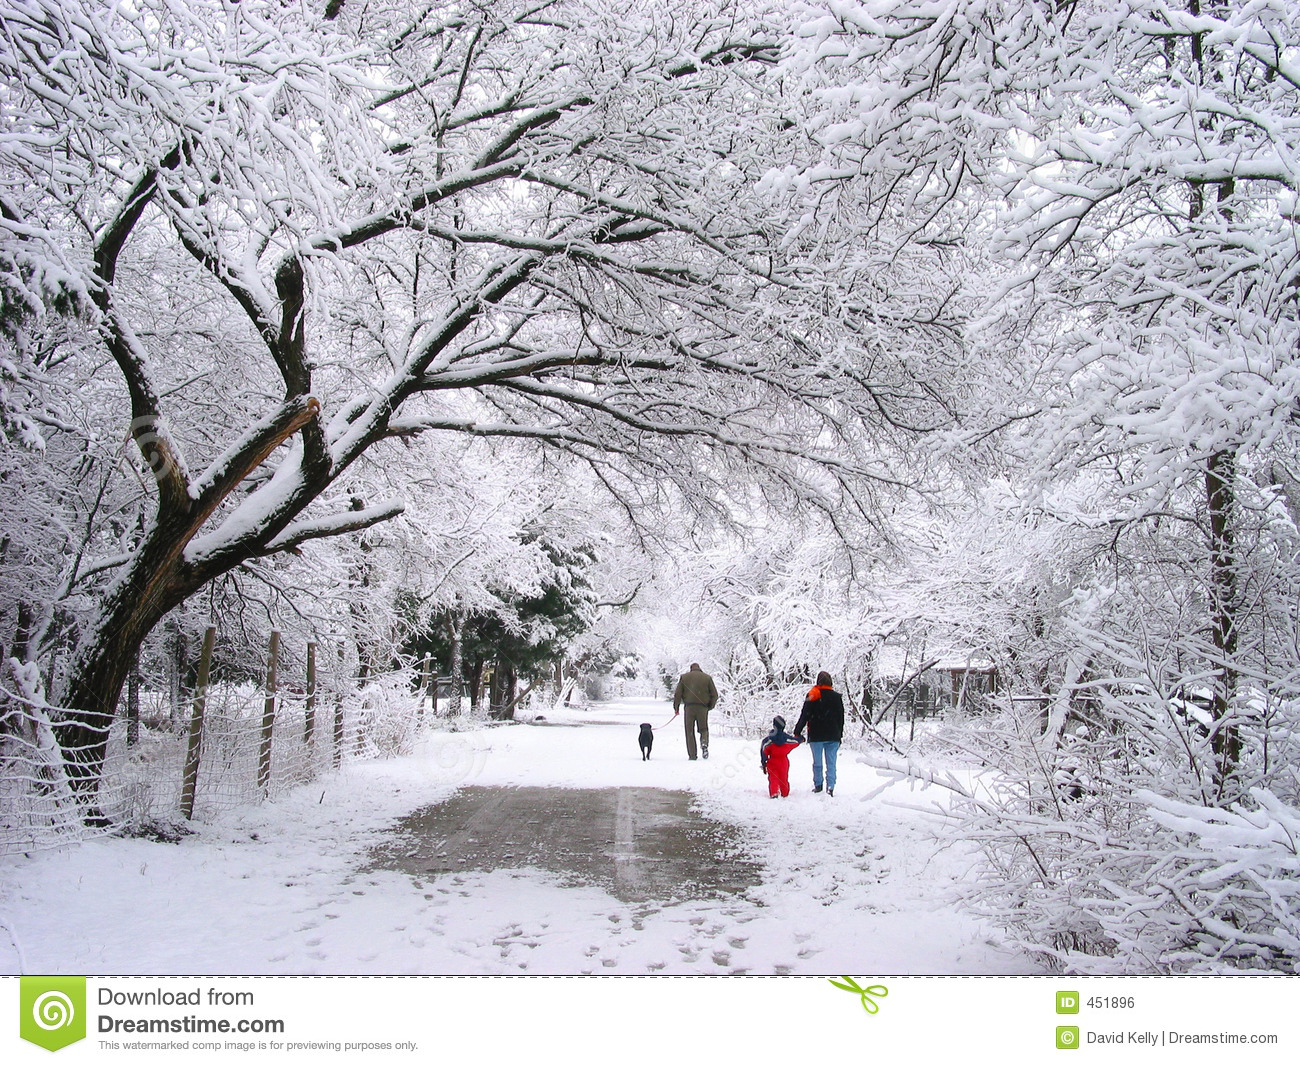 walking in the snow - photo #35